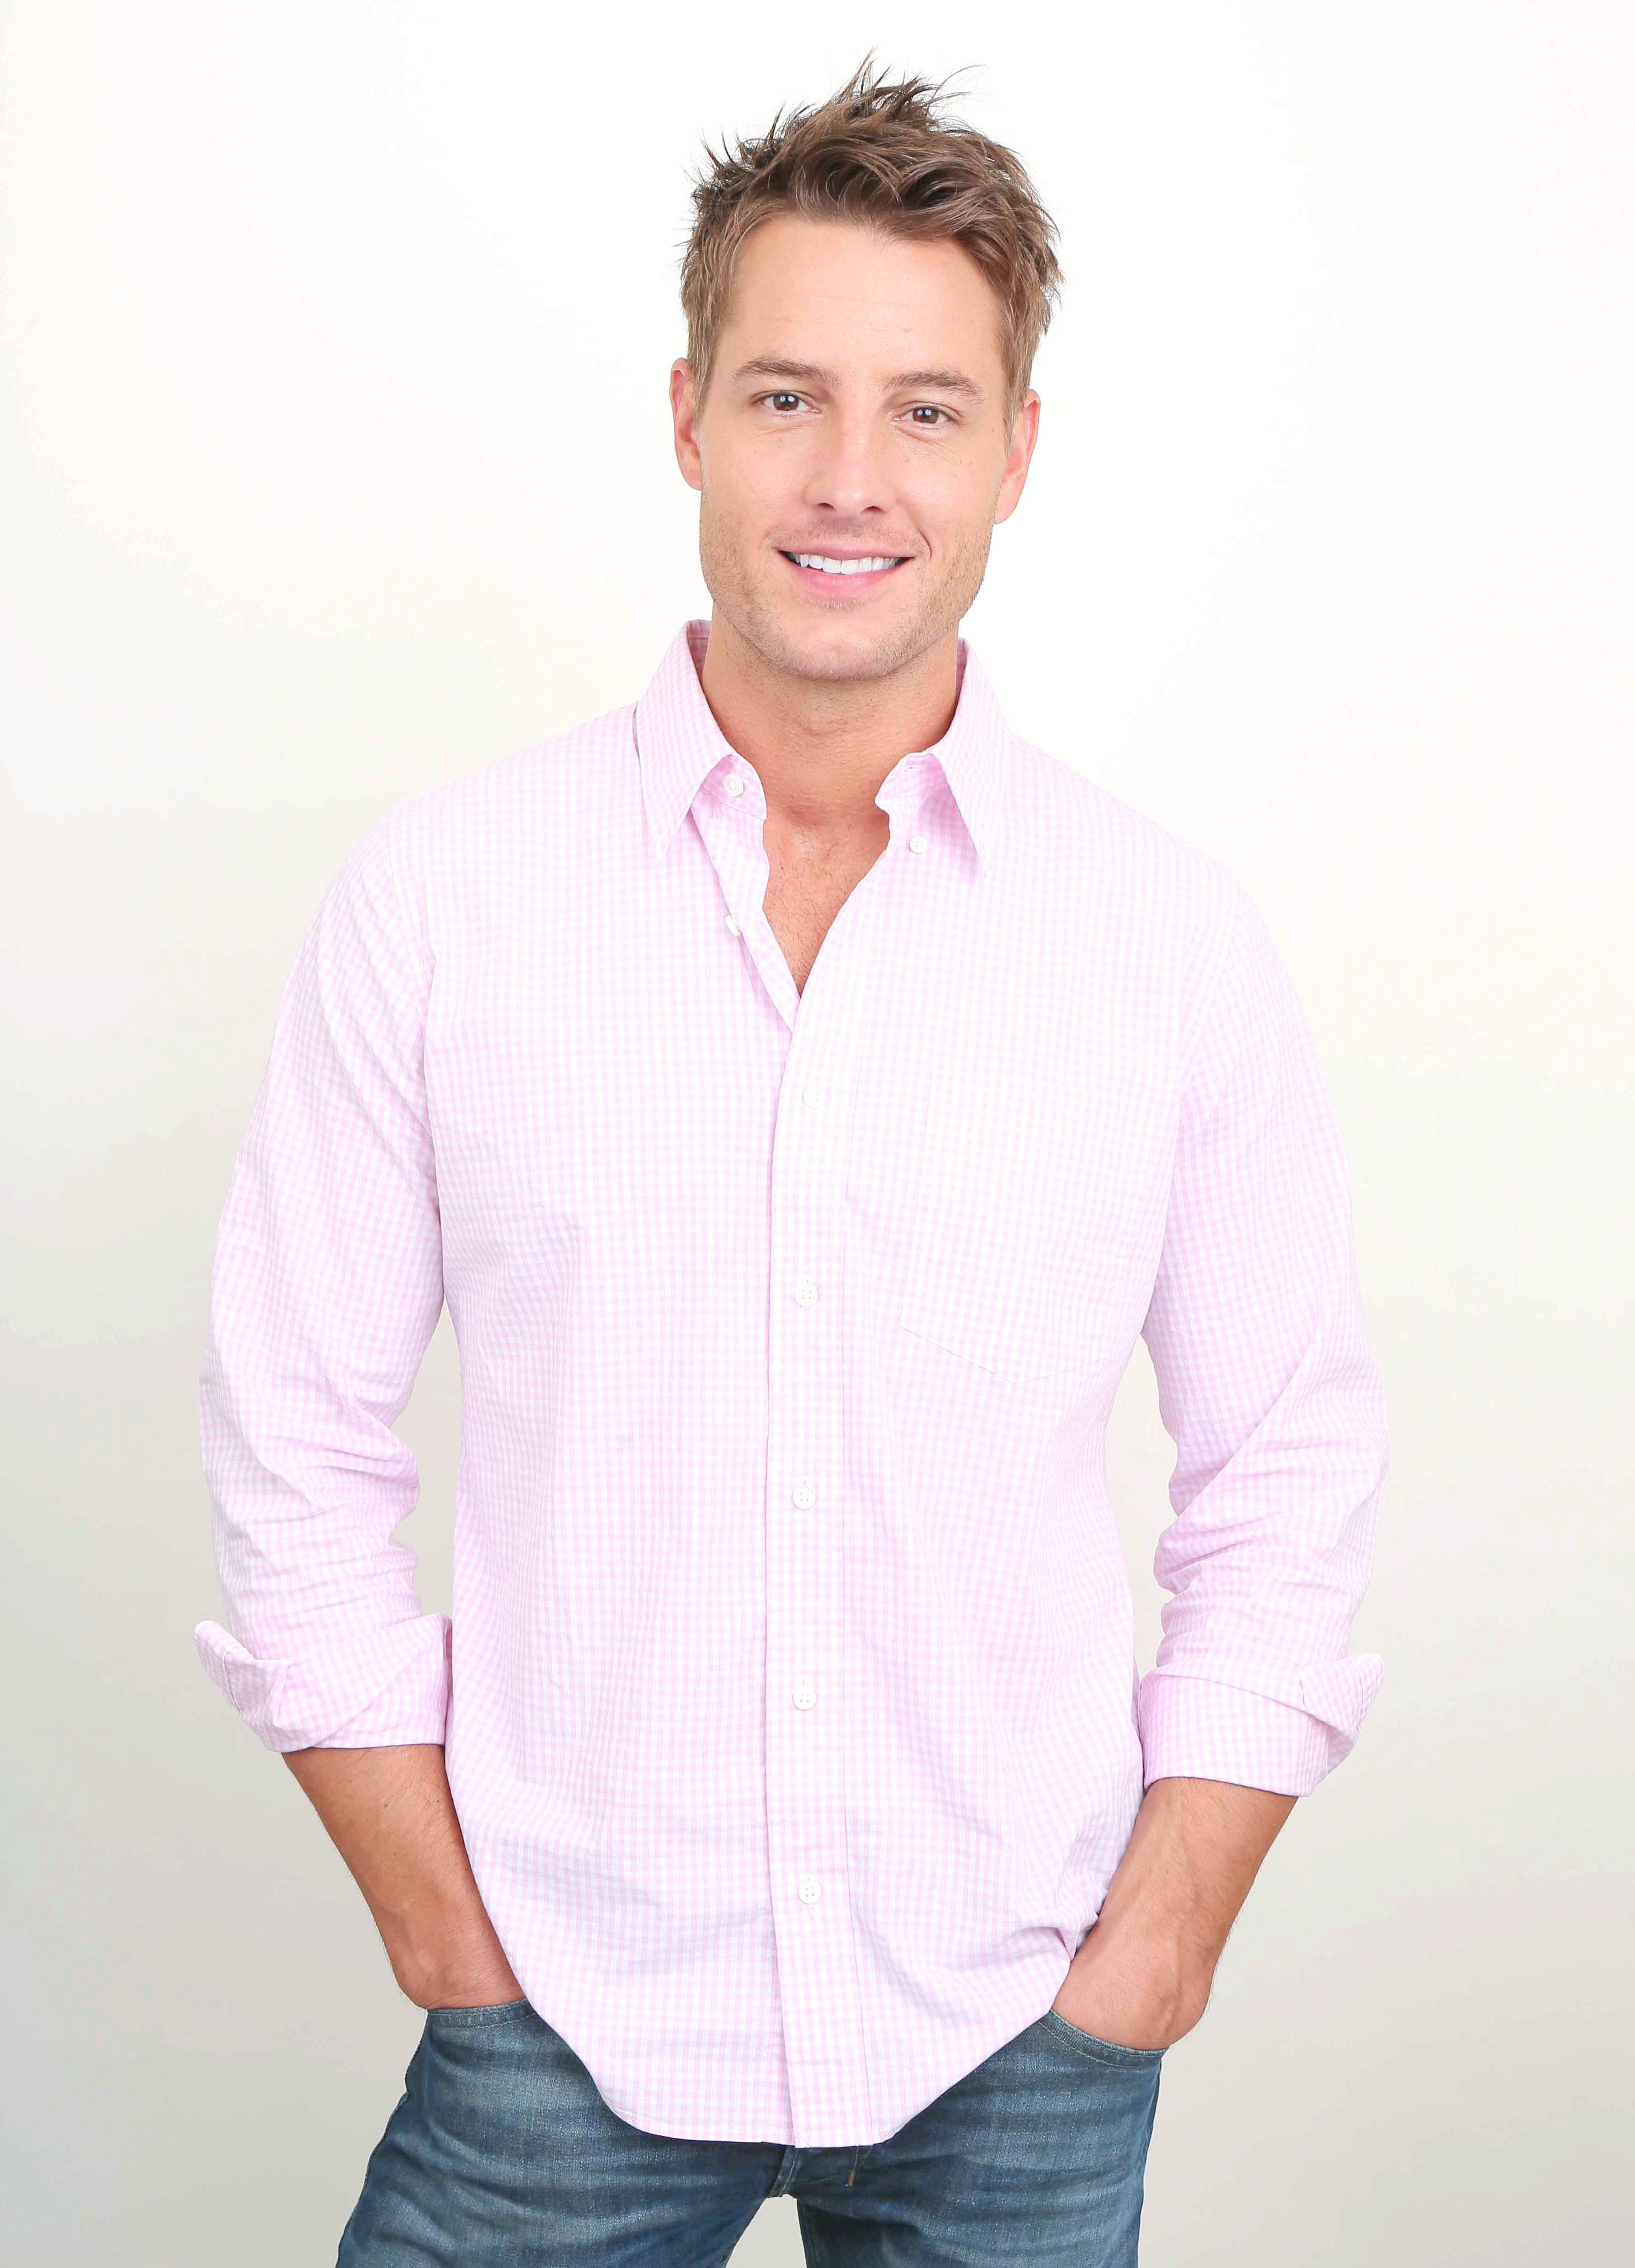 justin hartley youngjustin hartley and chrishell stause, justin hartley wiki, justin hartley arrow, justin hartley facebook, justin hartley twitter, justin hartley oliver queen, justin hartley height, justin hartley young, justin hartley demi lovato, justin hartley pinterest, justin hartley instagram, justin hartley 2016, justin hartley daughter, justin hartley lindsay korman, justin hartley website, justin hartley filmography, justin hartley married, justin hartley imdb, justin hartley net worth, justin hartley and wife